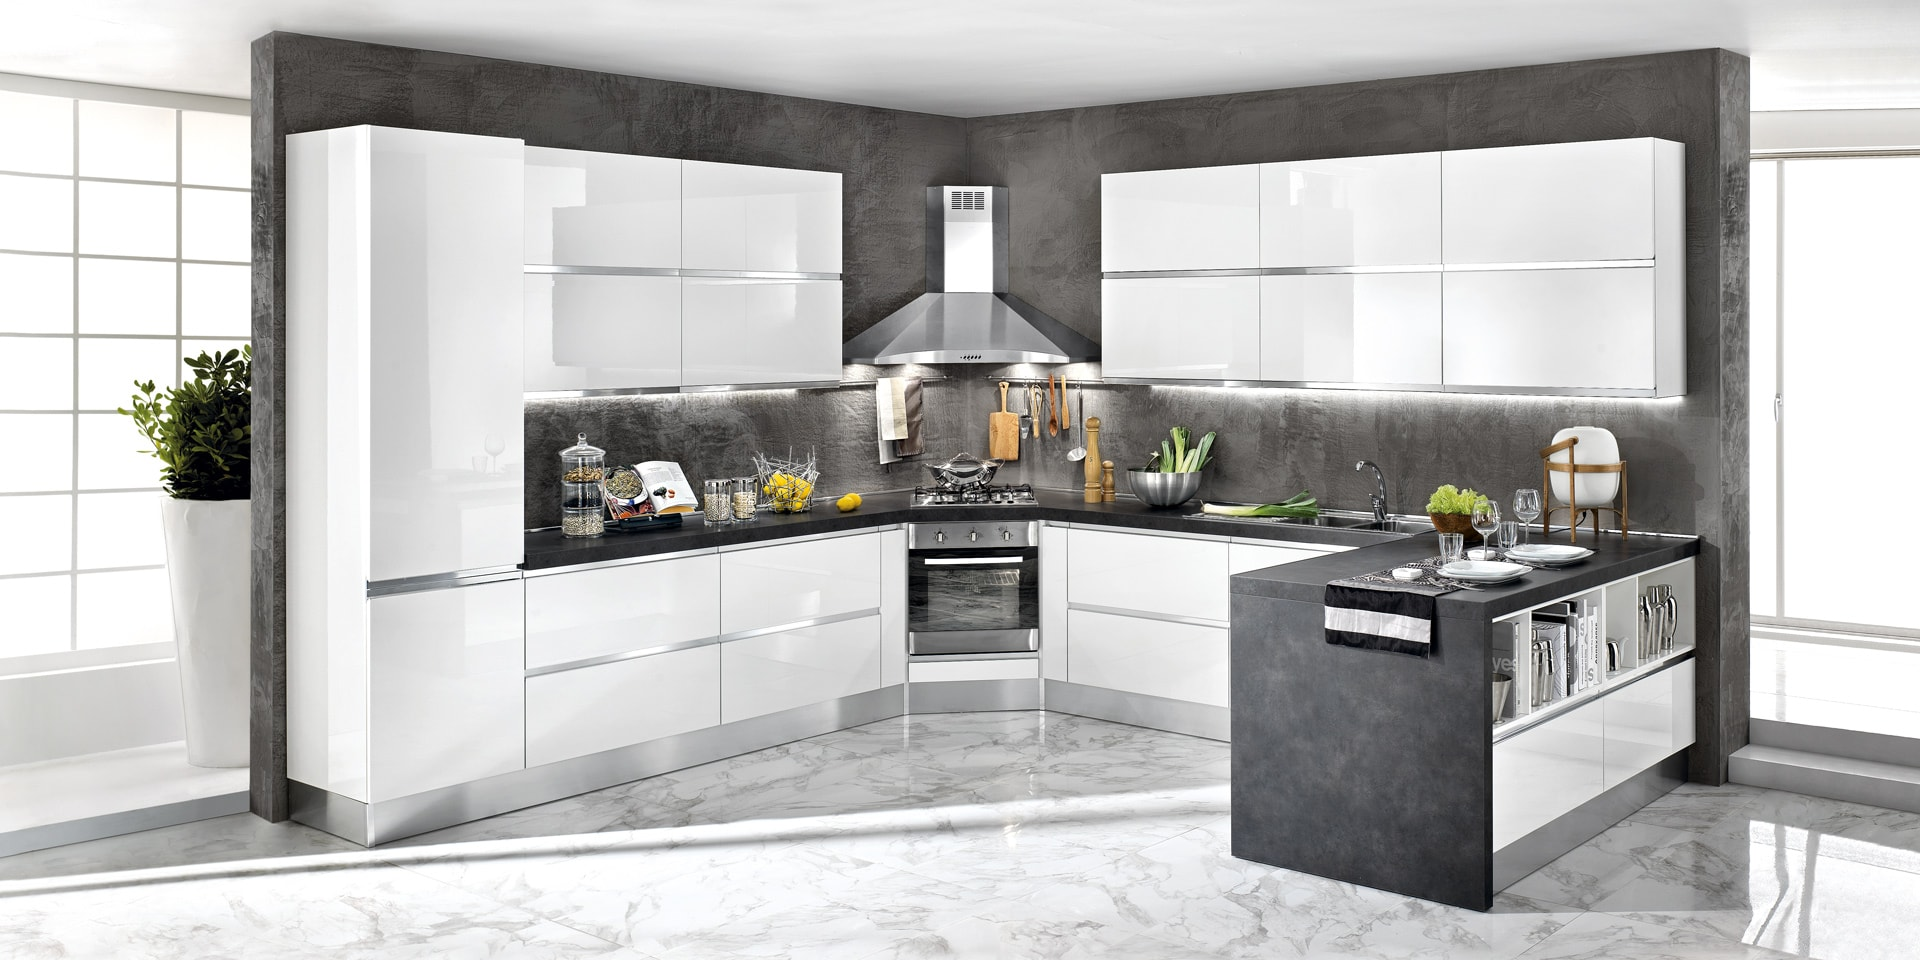 Cucine mondo convenienza for Cucine catalogo